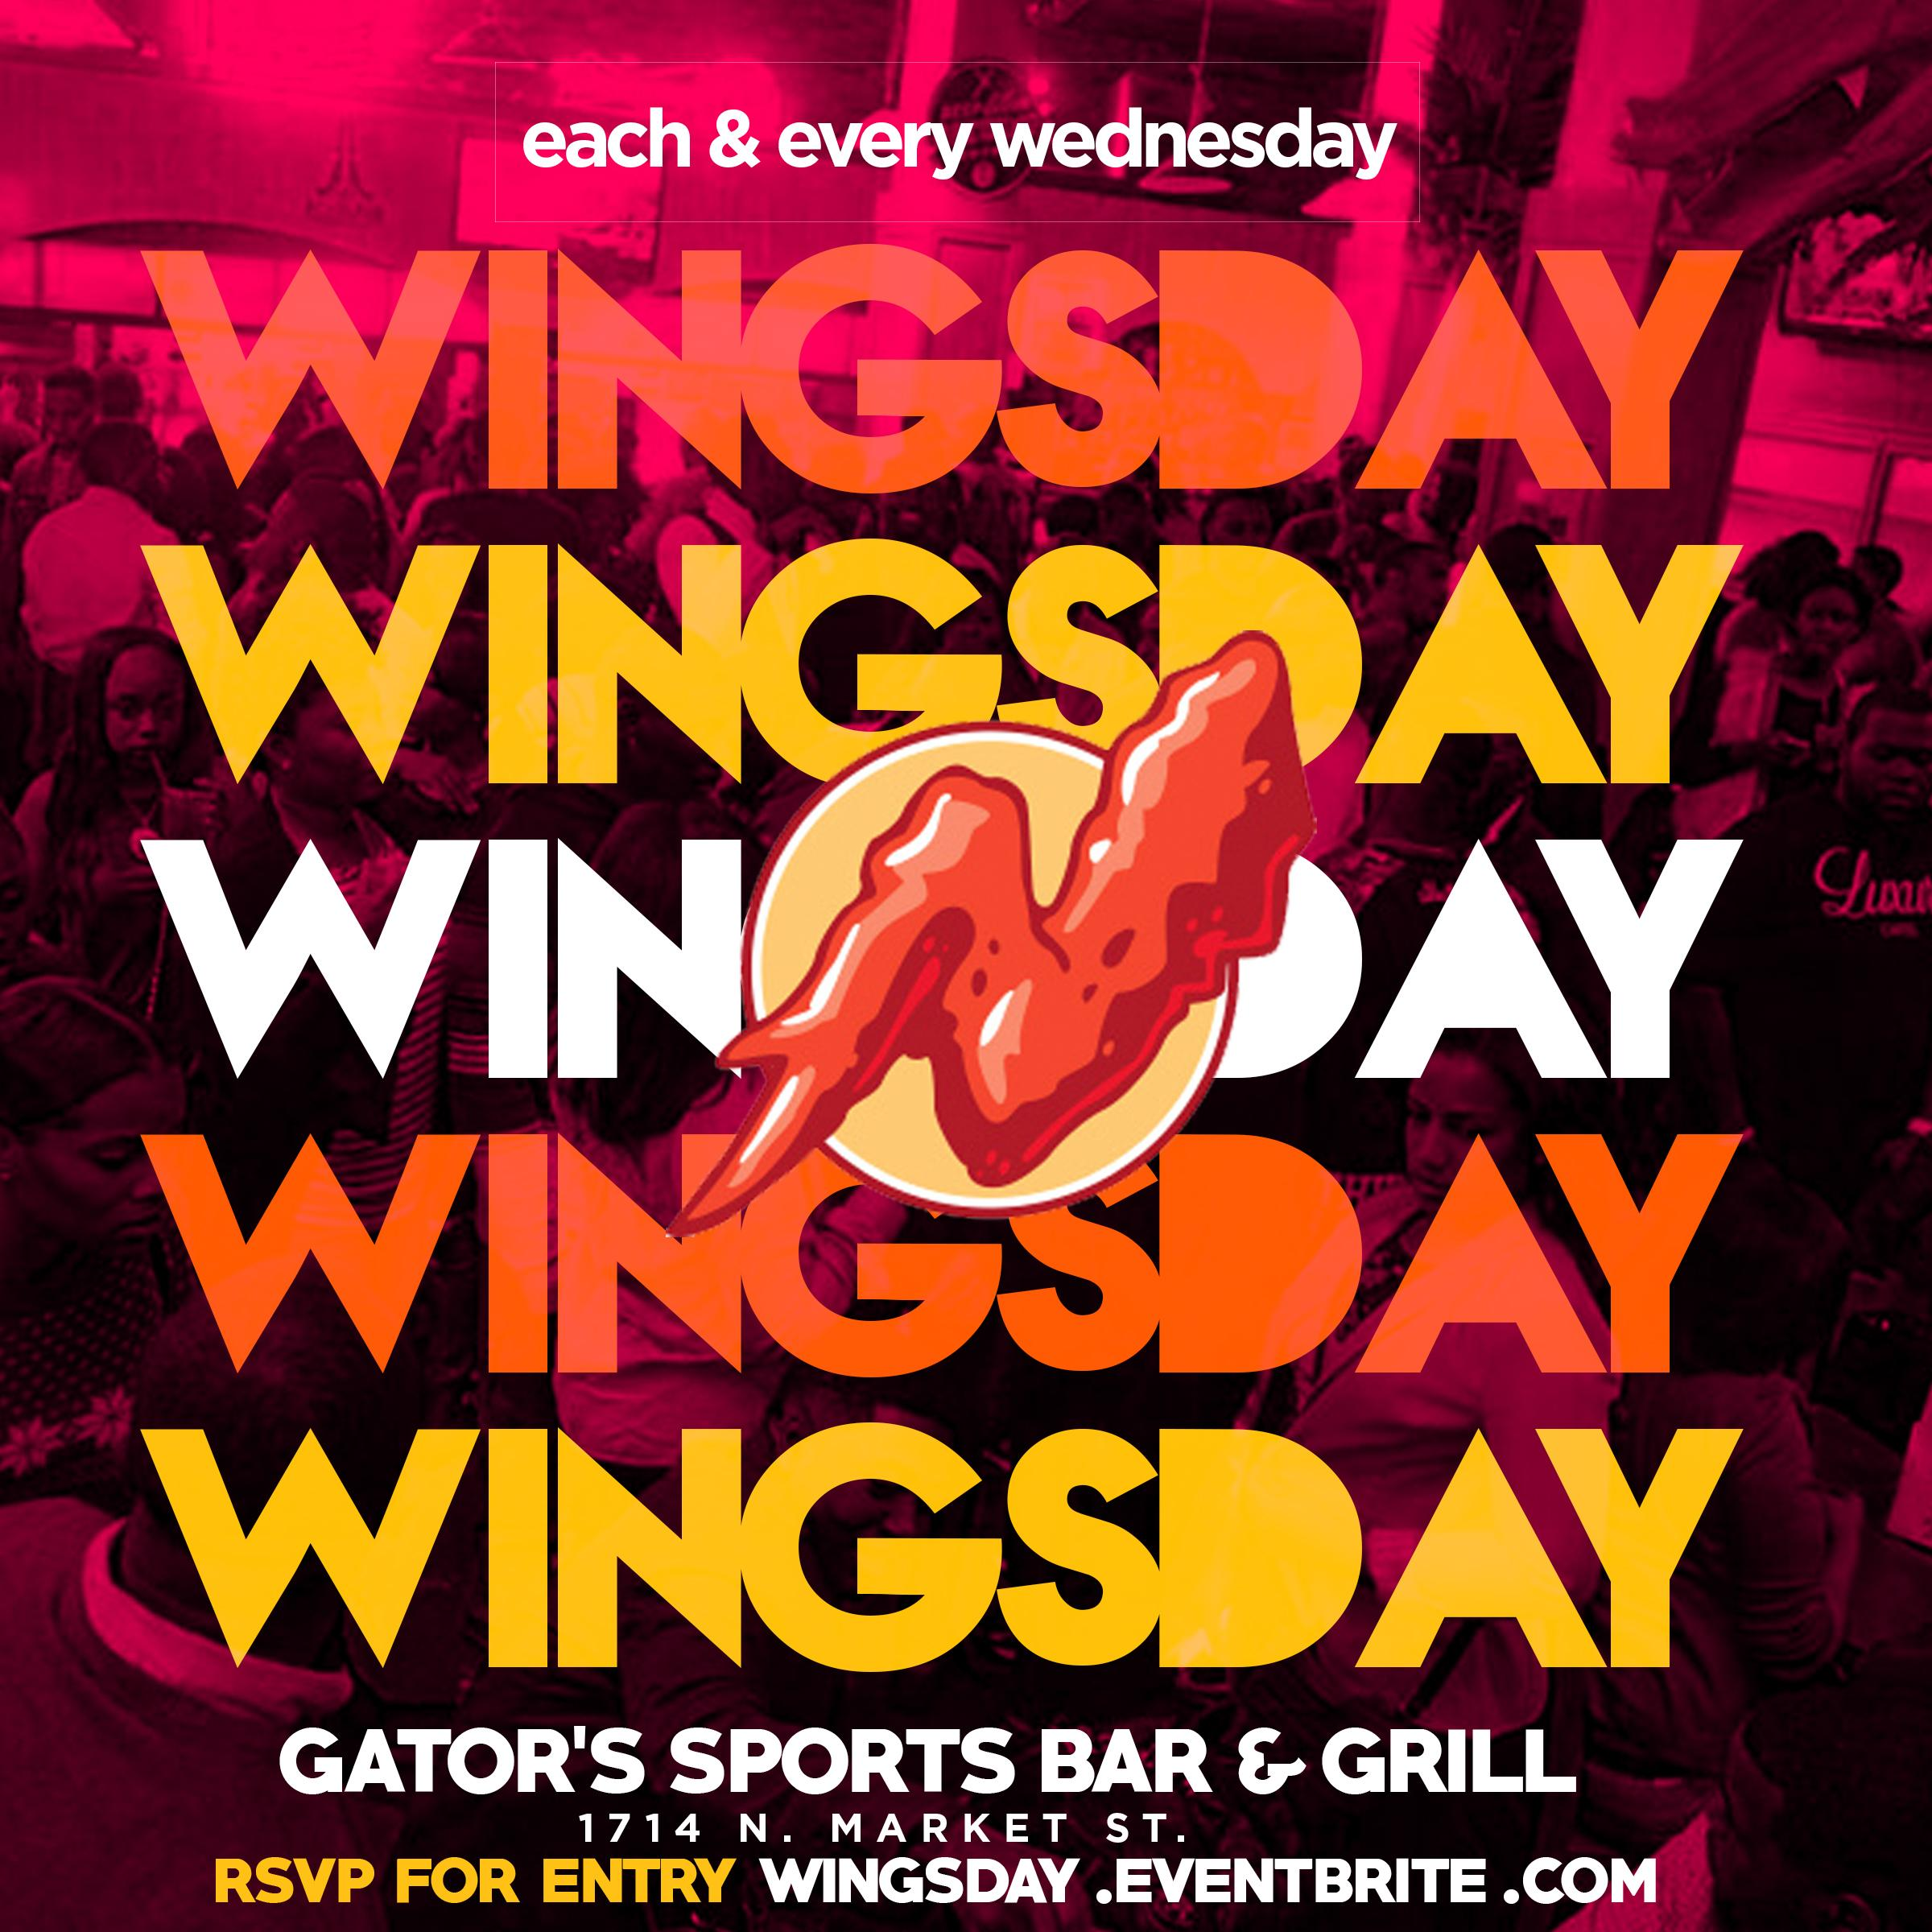 #Wingsday. #Wingsday